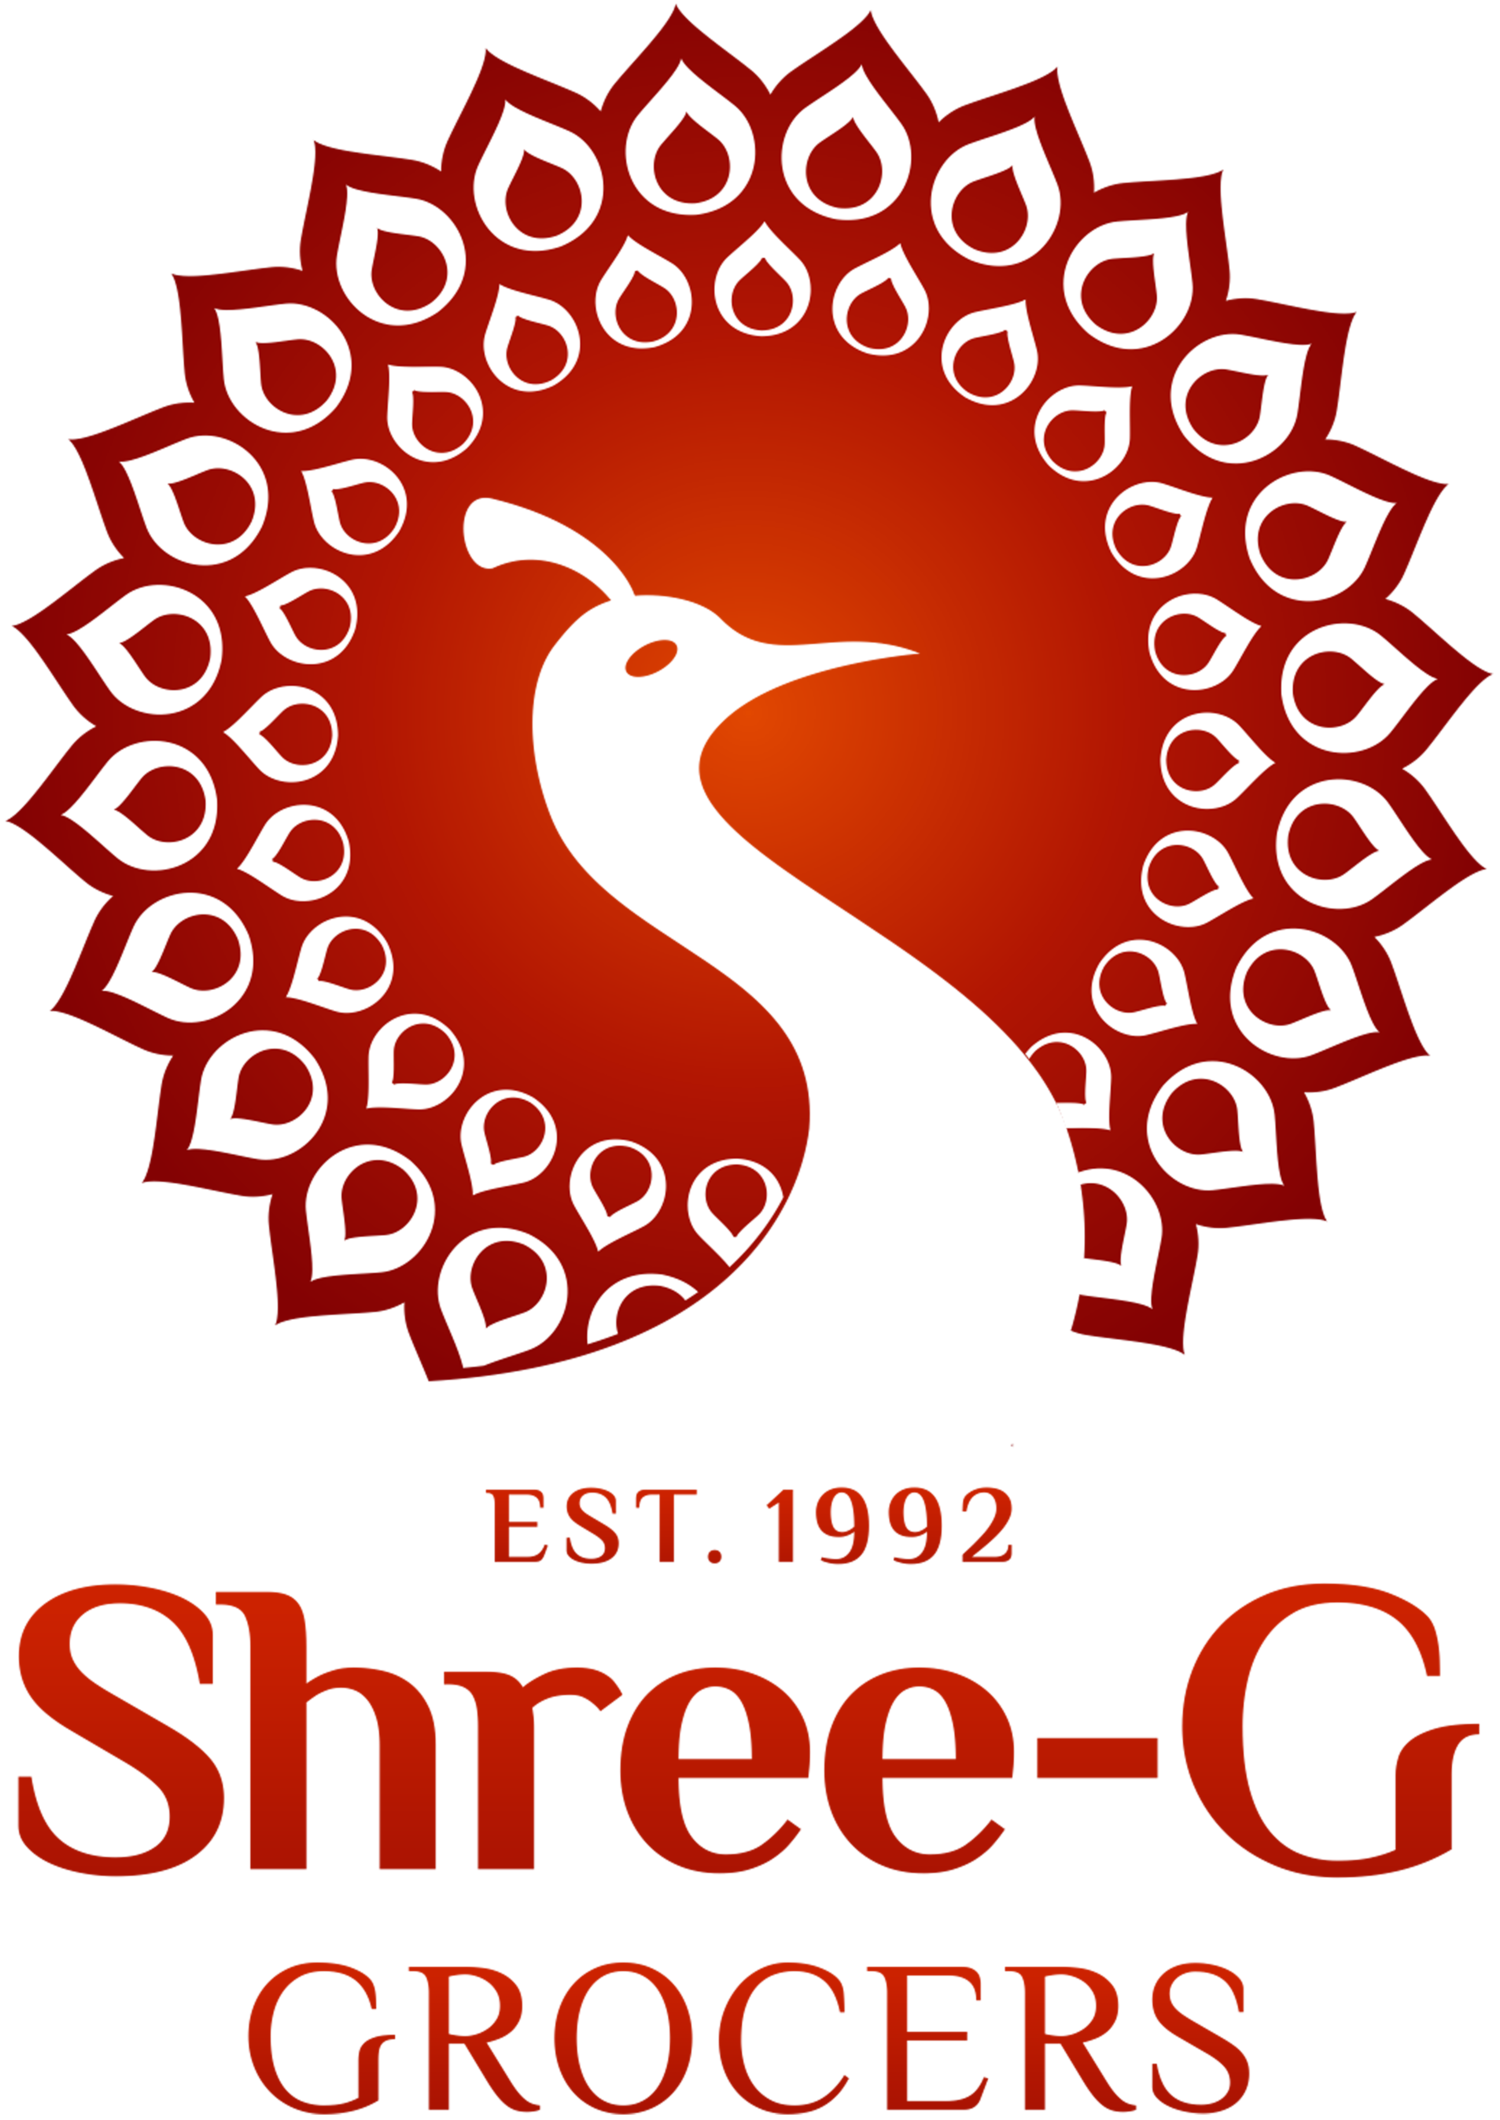 Shree-G Grocers